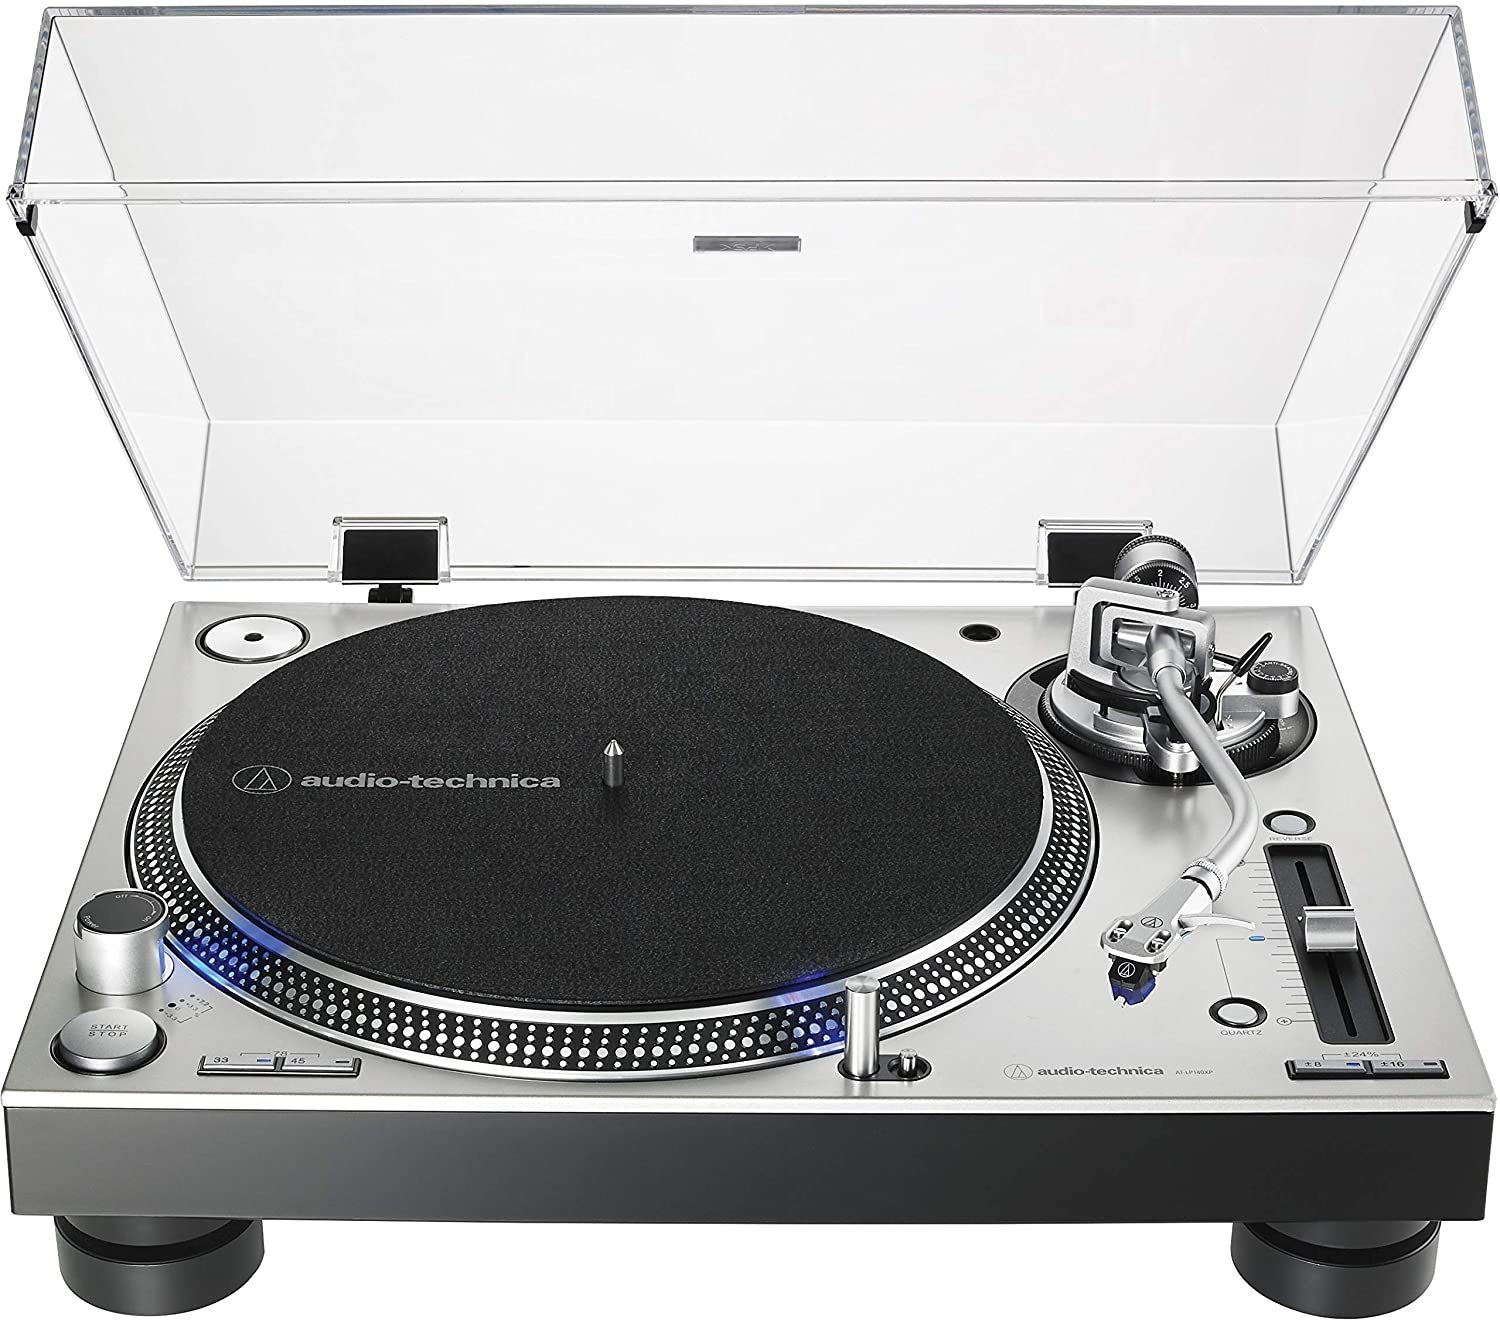 AT-LP140XP-BK Direct-Drive Professional DJ Turntable, Black, Hi-Fi, Fully Manual, 3 Speed, High Torque Motor